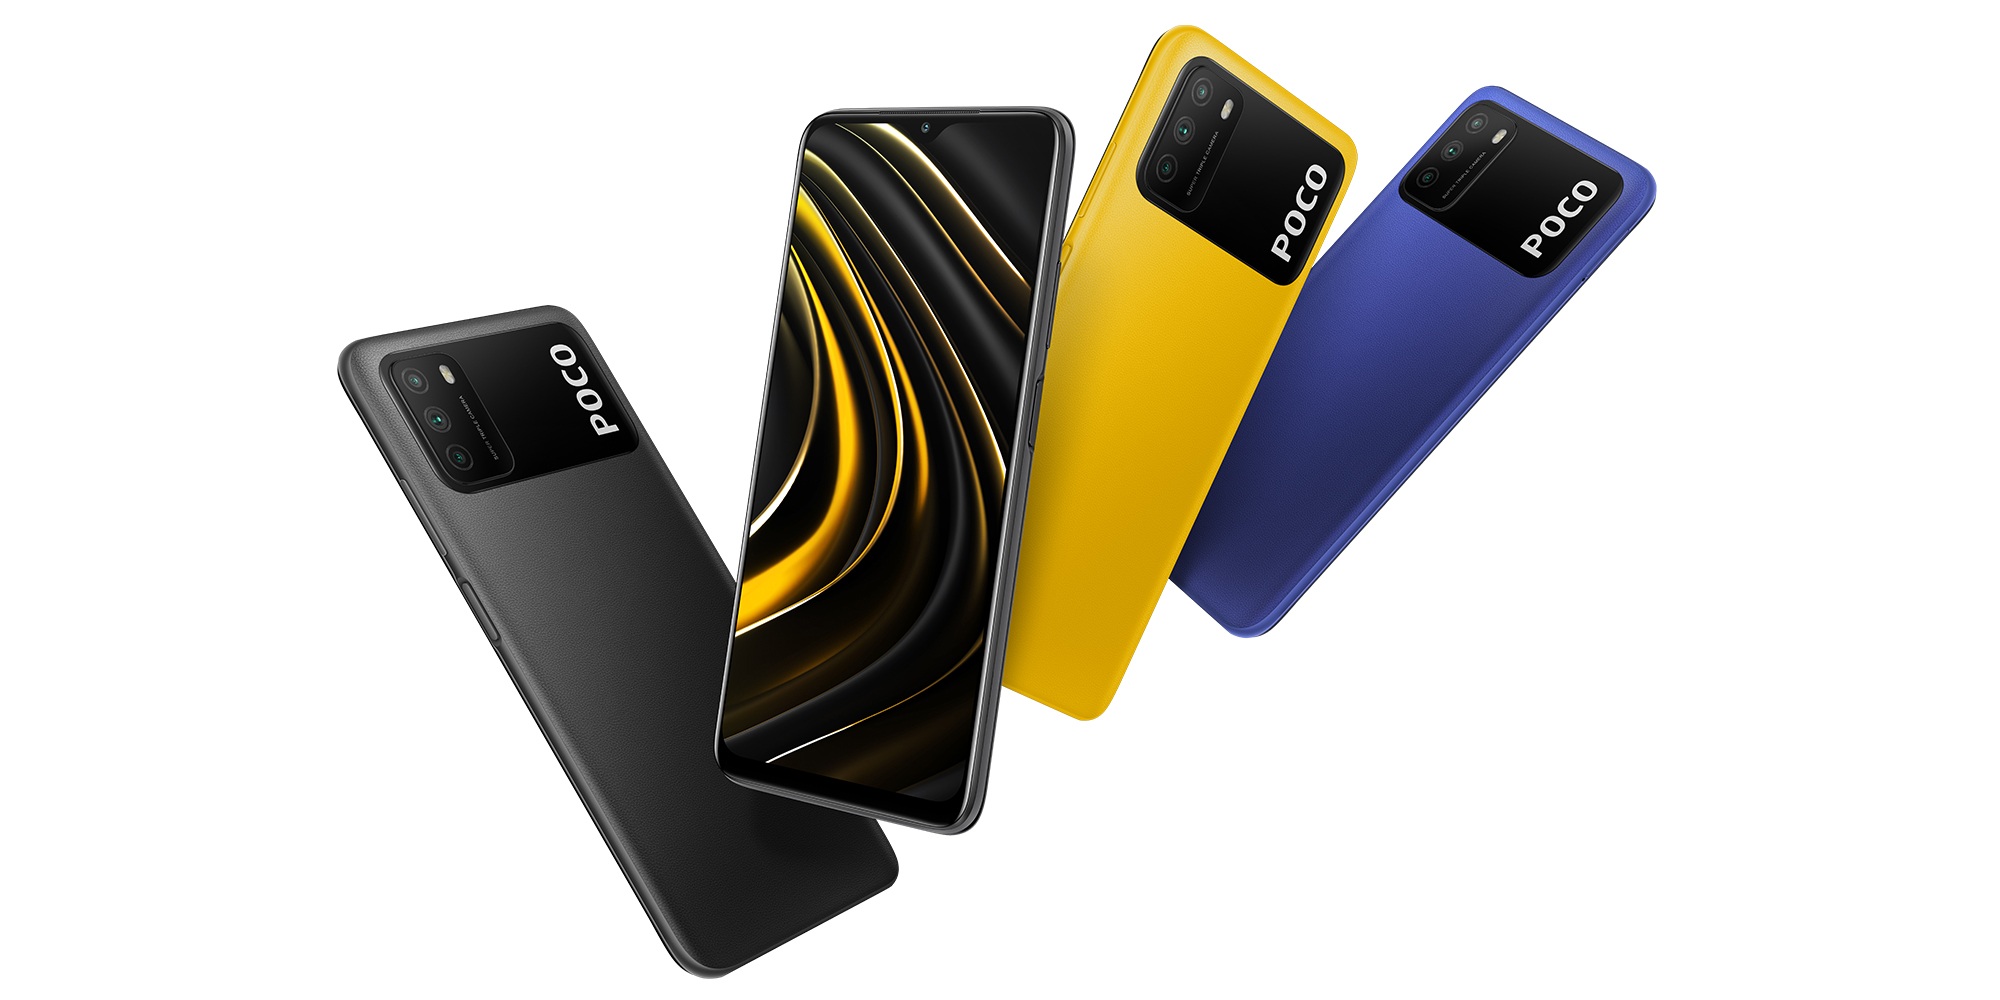 Poco M3 goes official w/ Snapdragon 662, 6,000mAh battery, $149 price - 9to5Google